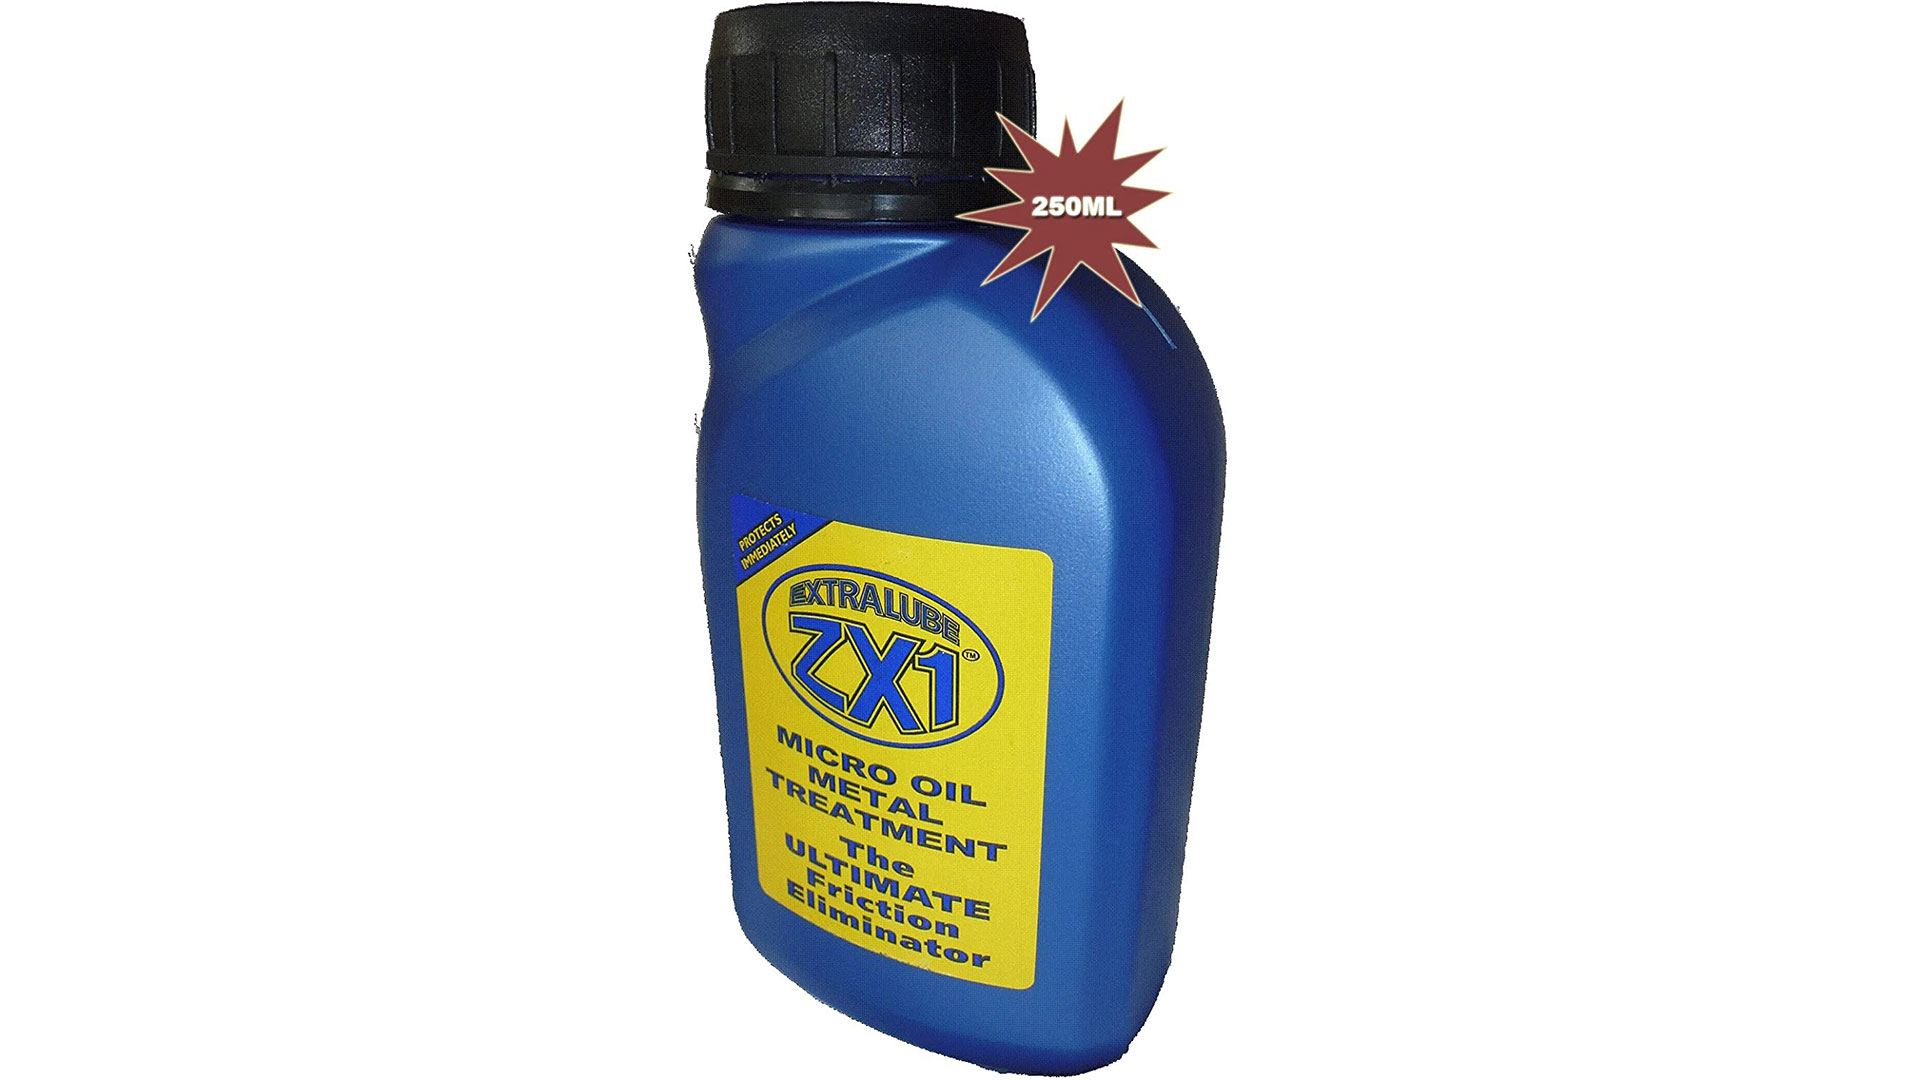 zx1 extralube oil additive